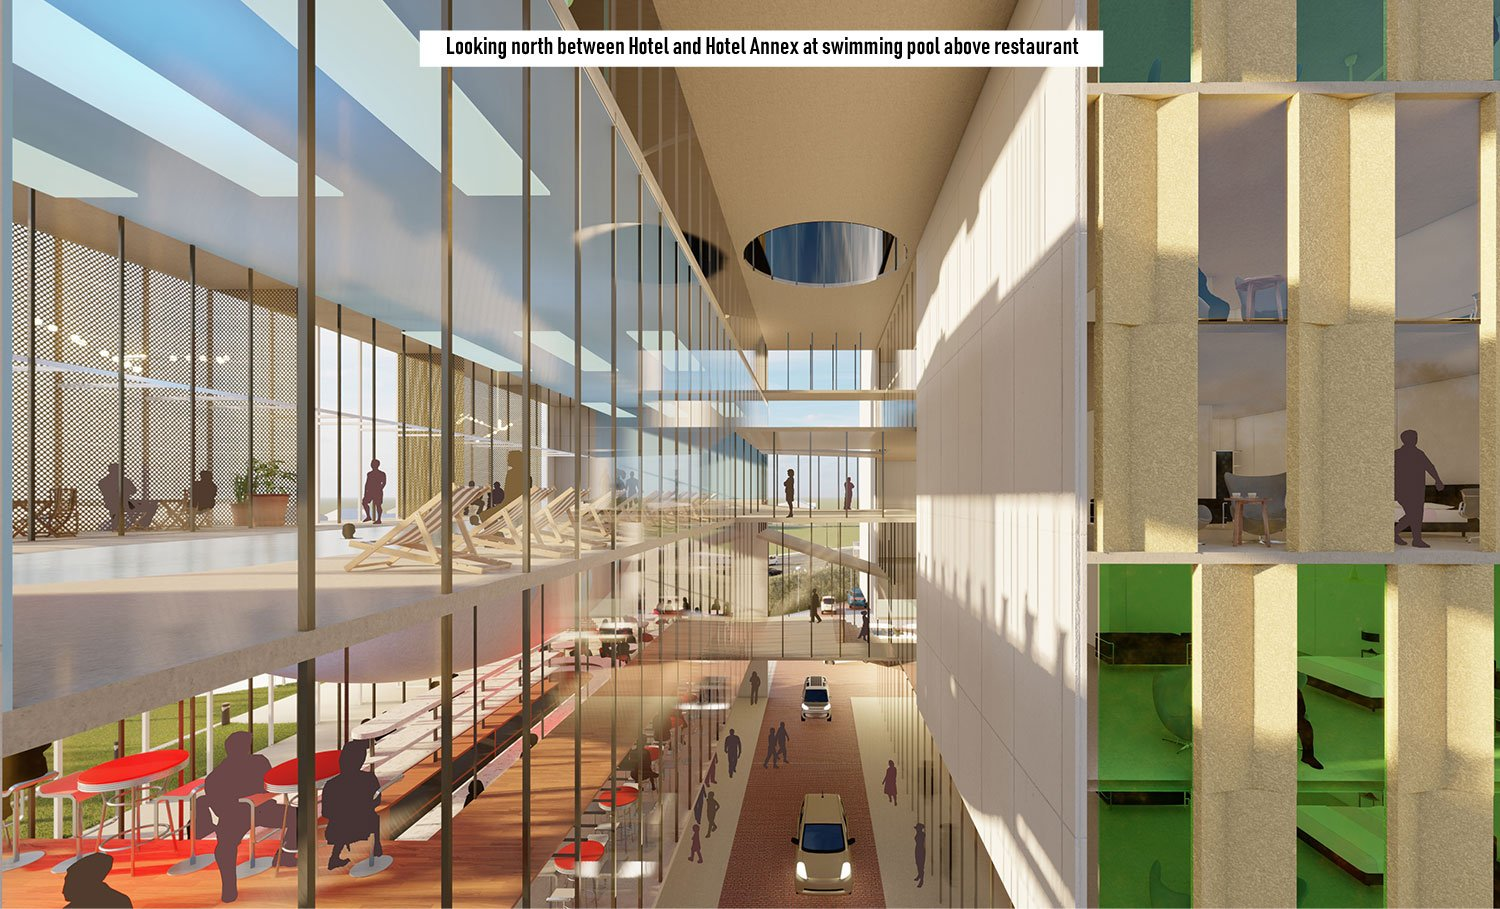 The Hotel Annex stacks public amenities connecting site and guest wing. University of Arkansas Community Design Center}